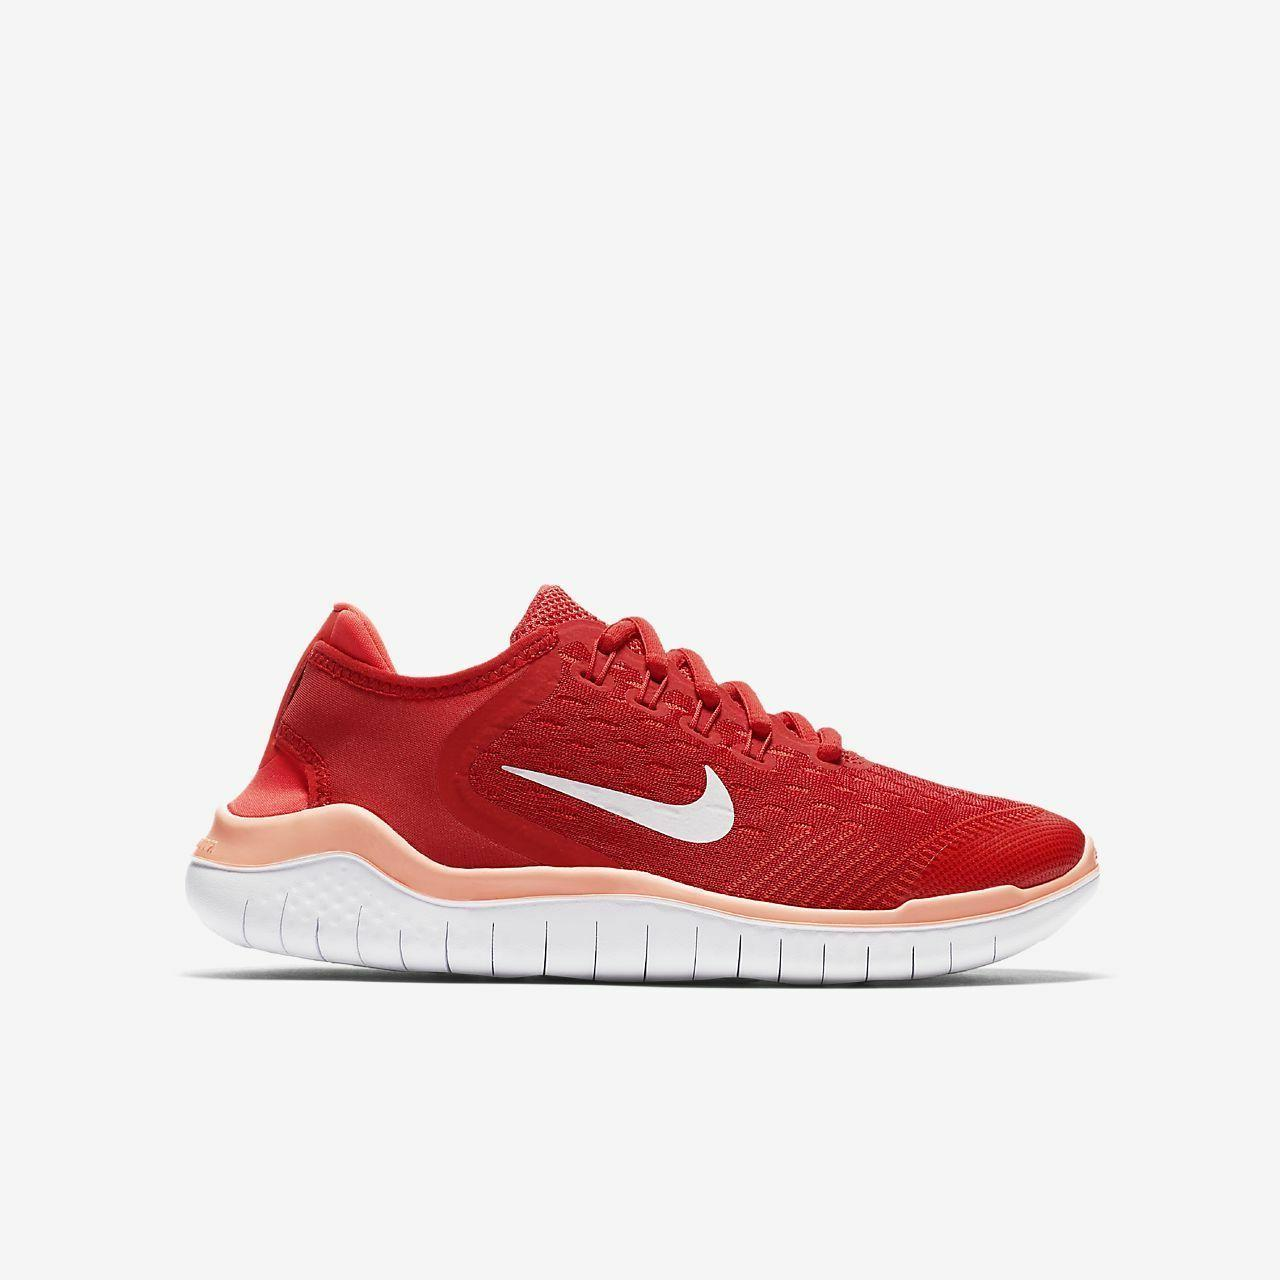 Nike Free RN 2018 AH3451 600 Speed Red Vast Grey Big Kids' Running Shoes